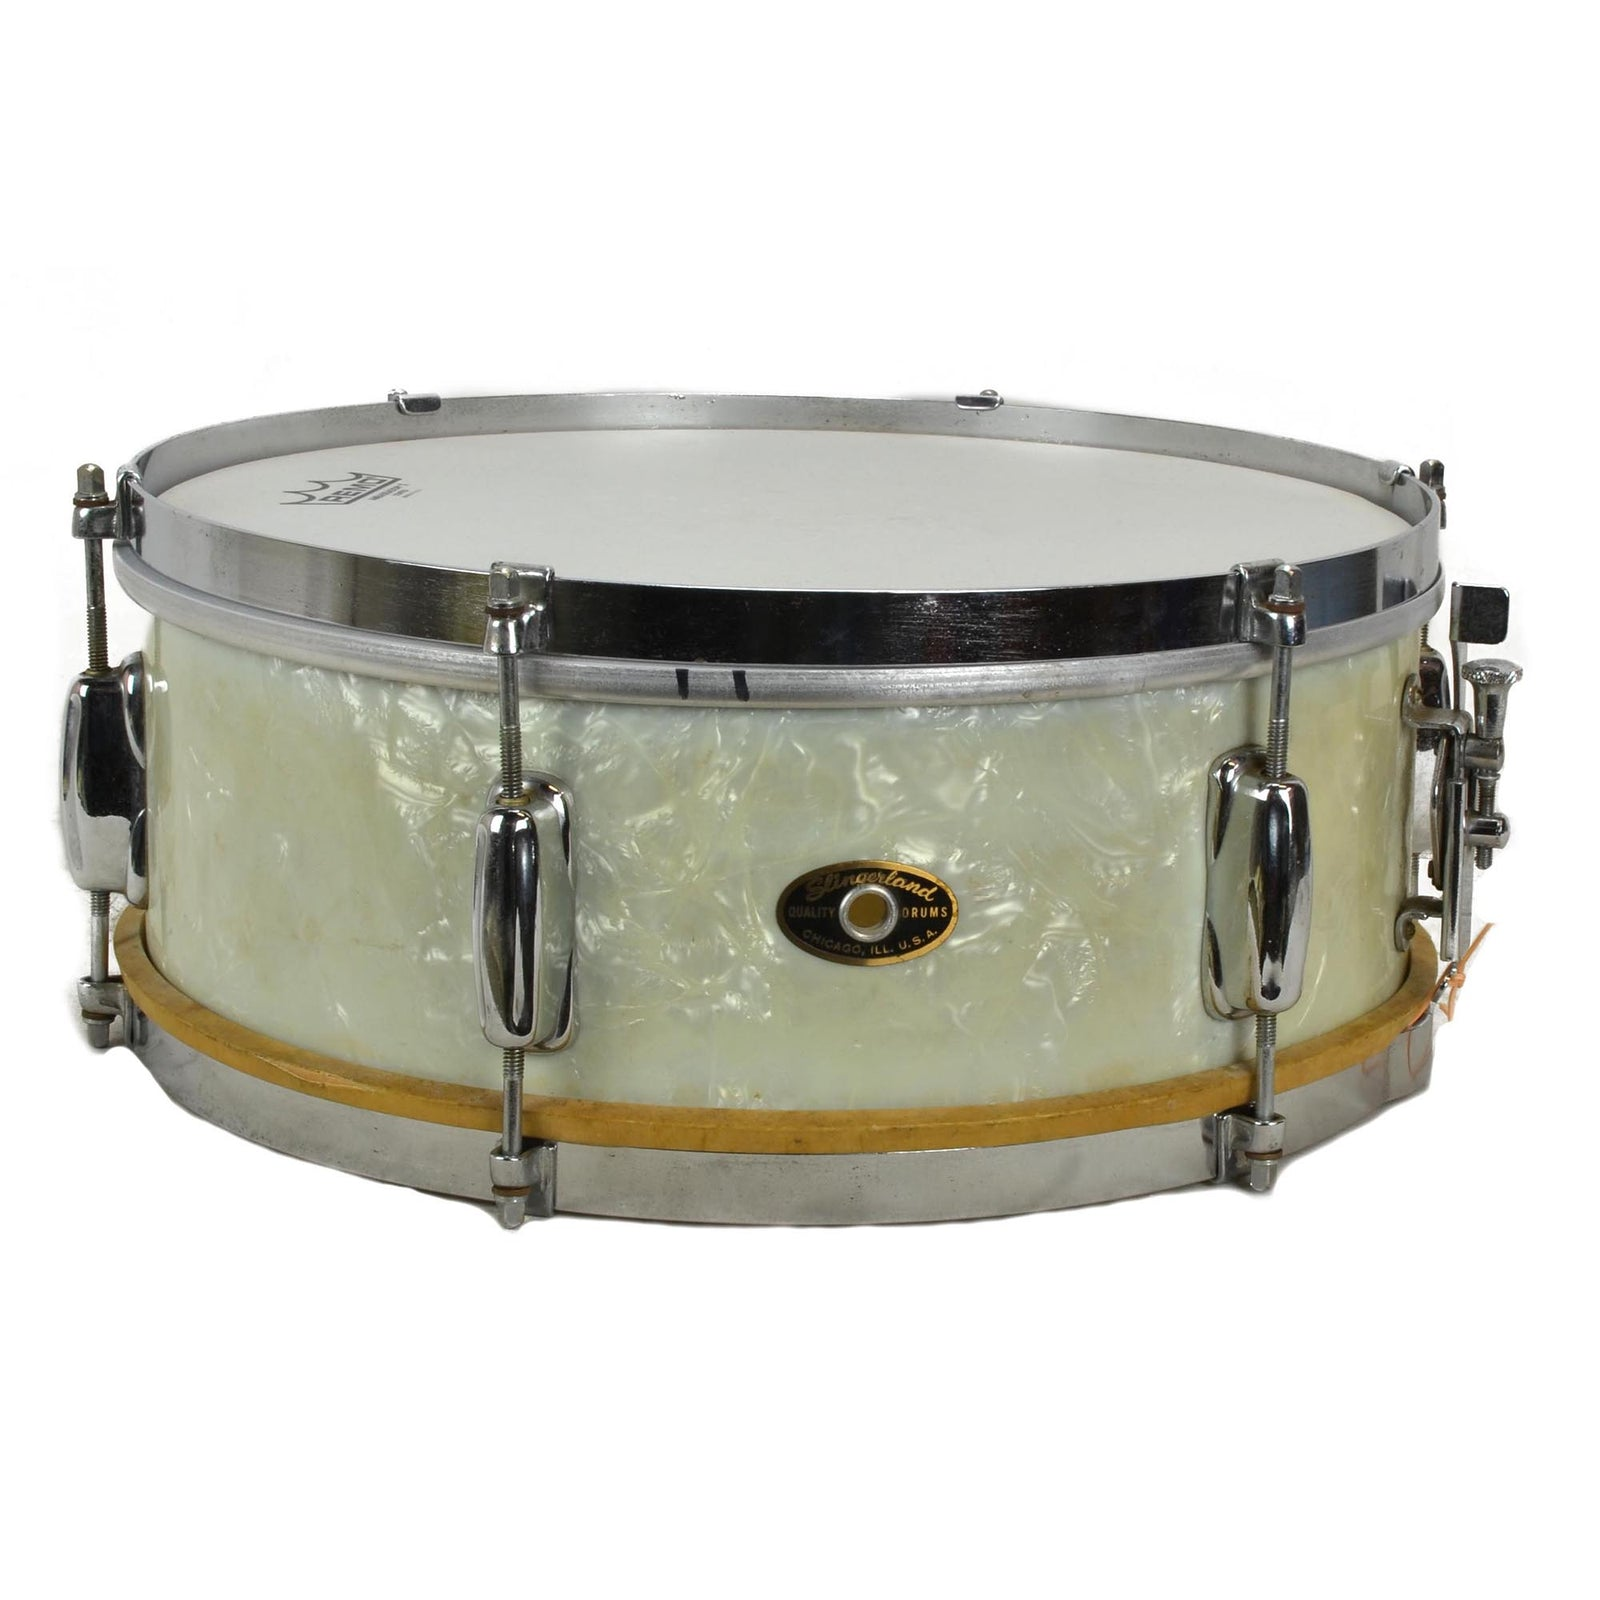 Slingerland Radio King Kit - White Marine Pearl - Used